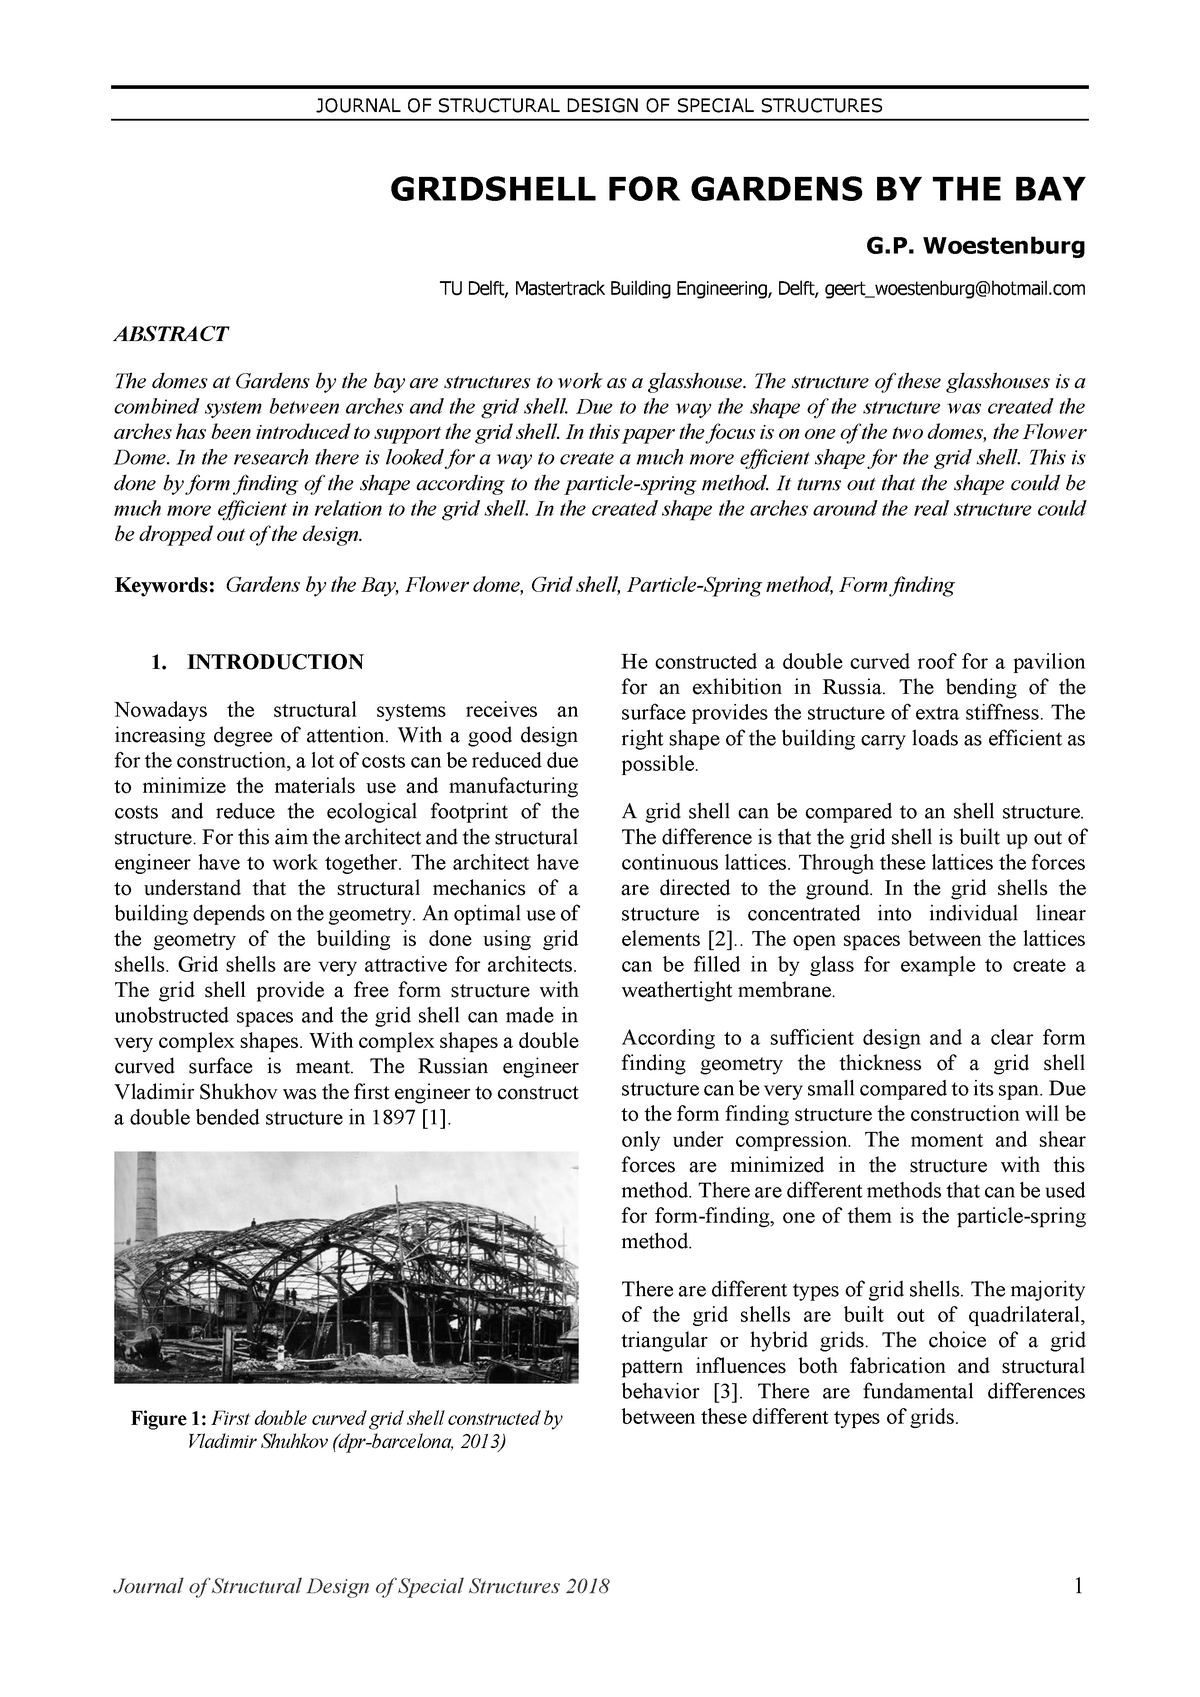 4207432 - Woestenburg - Gridshell for Gardens By The Bay - CIE5251